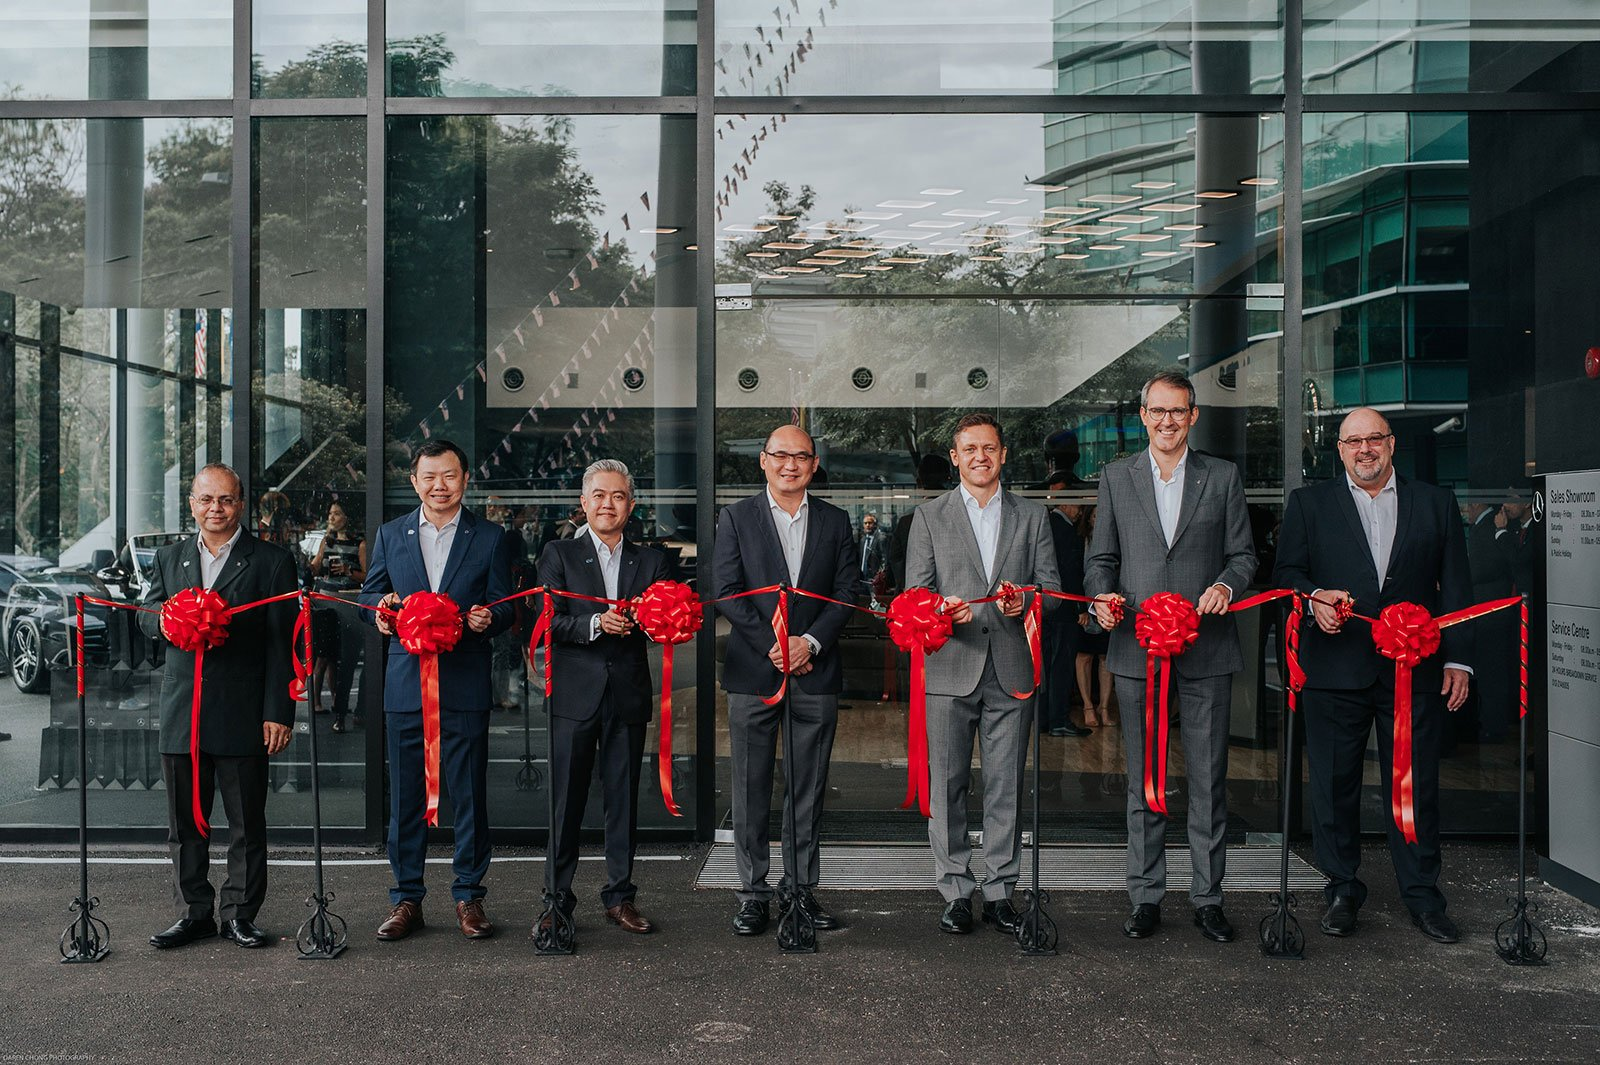 Mercedes-Benz Malaysia unveils new brand presence at Cycle & Carriage Bintang